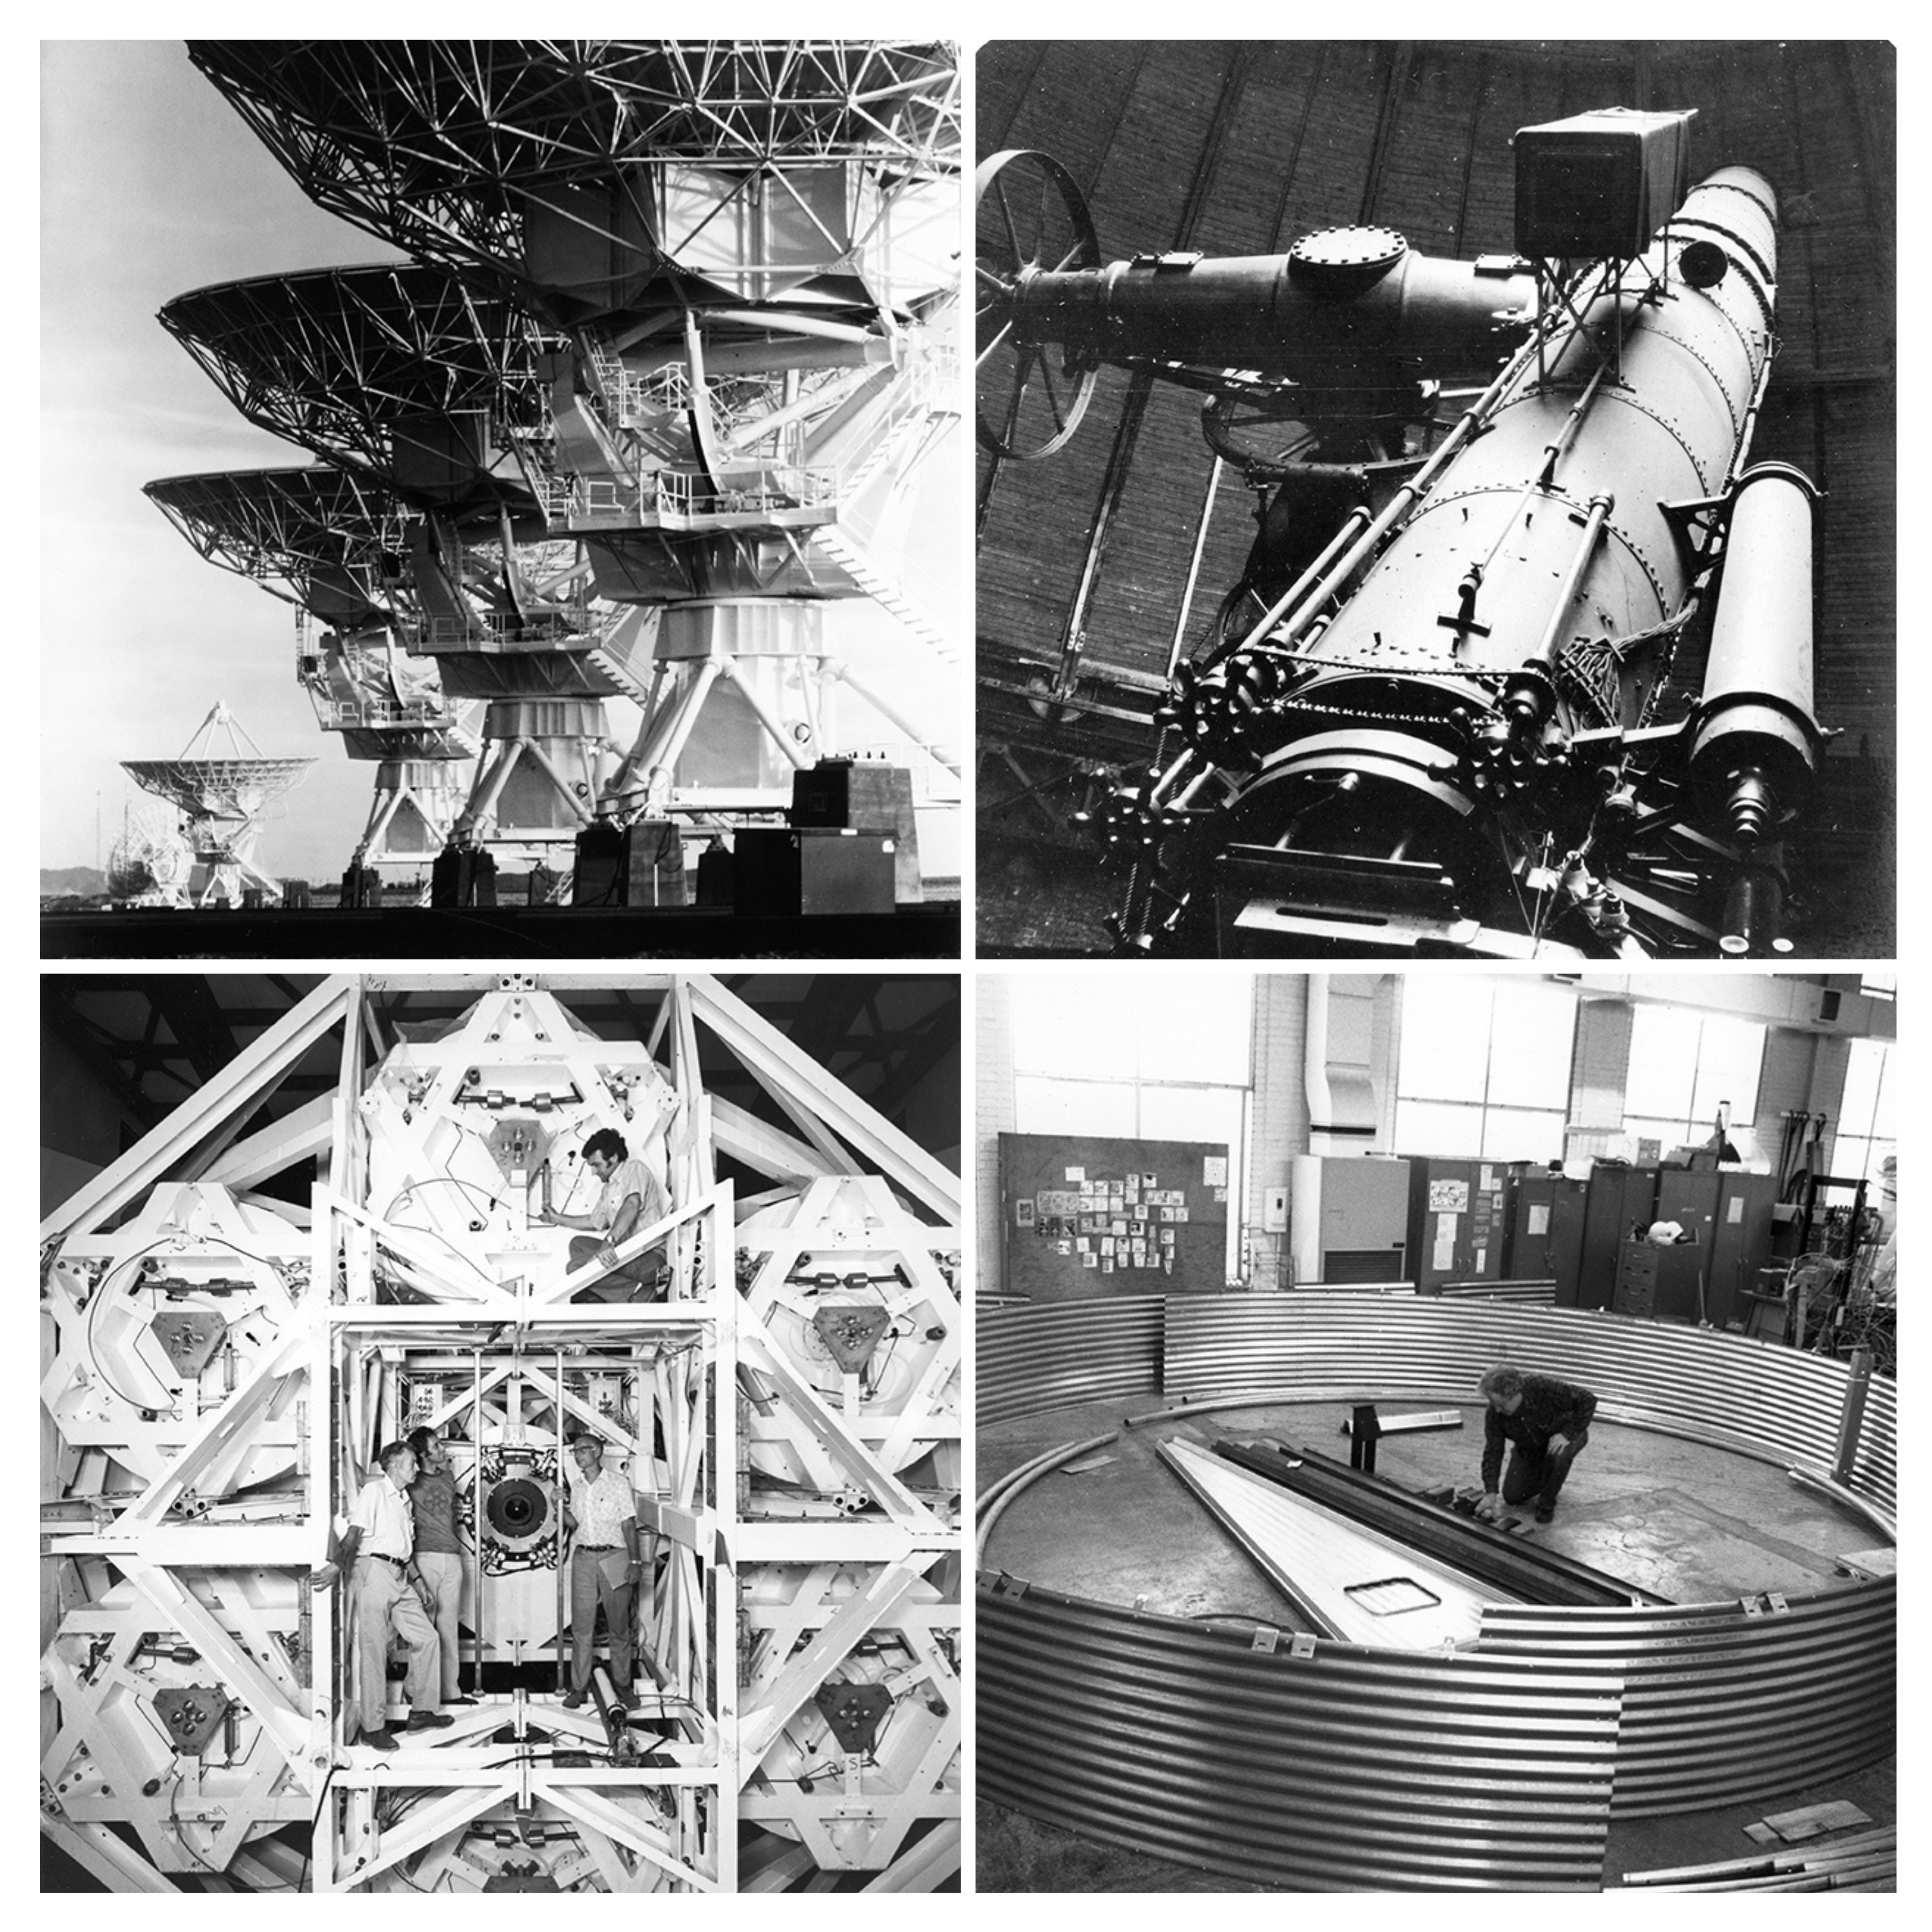 (clockwise, from top left corner) Telescopes in the Very Large Array, The Thaw Telescope at the Allegheny Observatory, The Multiple Mirror Telescope, Cosmic Ray Detector